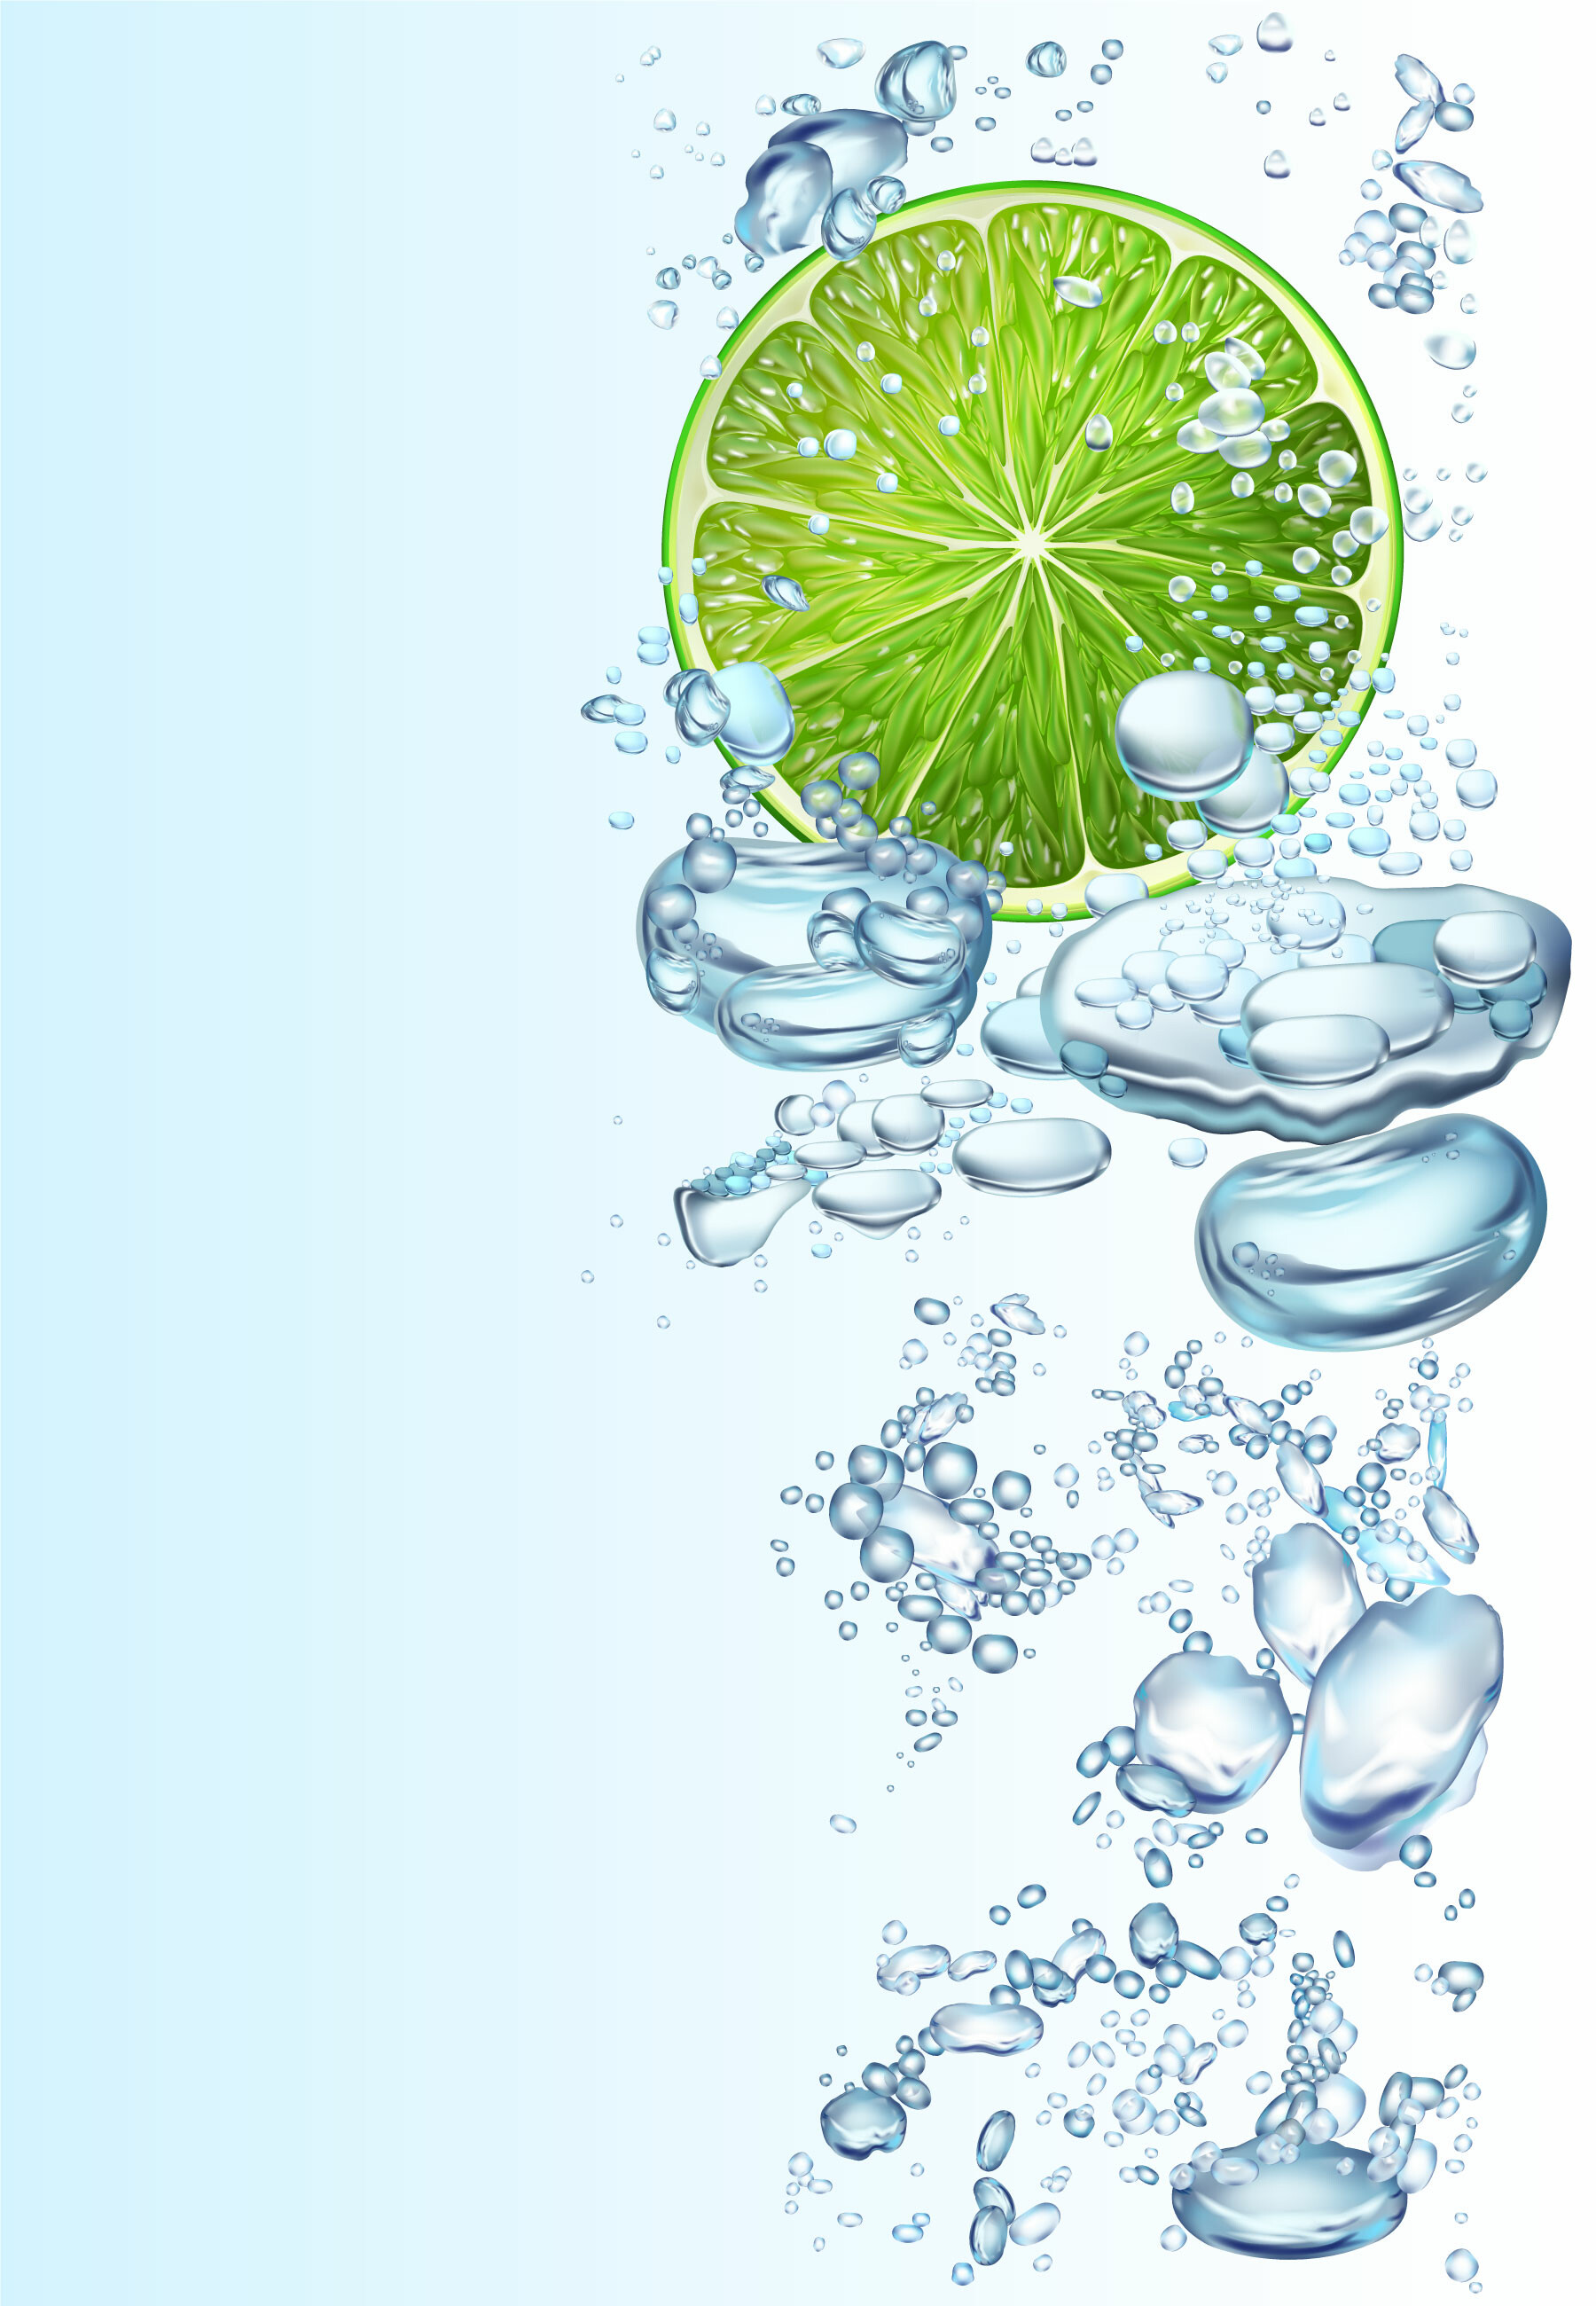 150008 download wallpaper Art, Bubbles, Lime, Liquid, Lobule, Clove screensavers and pictures for free